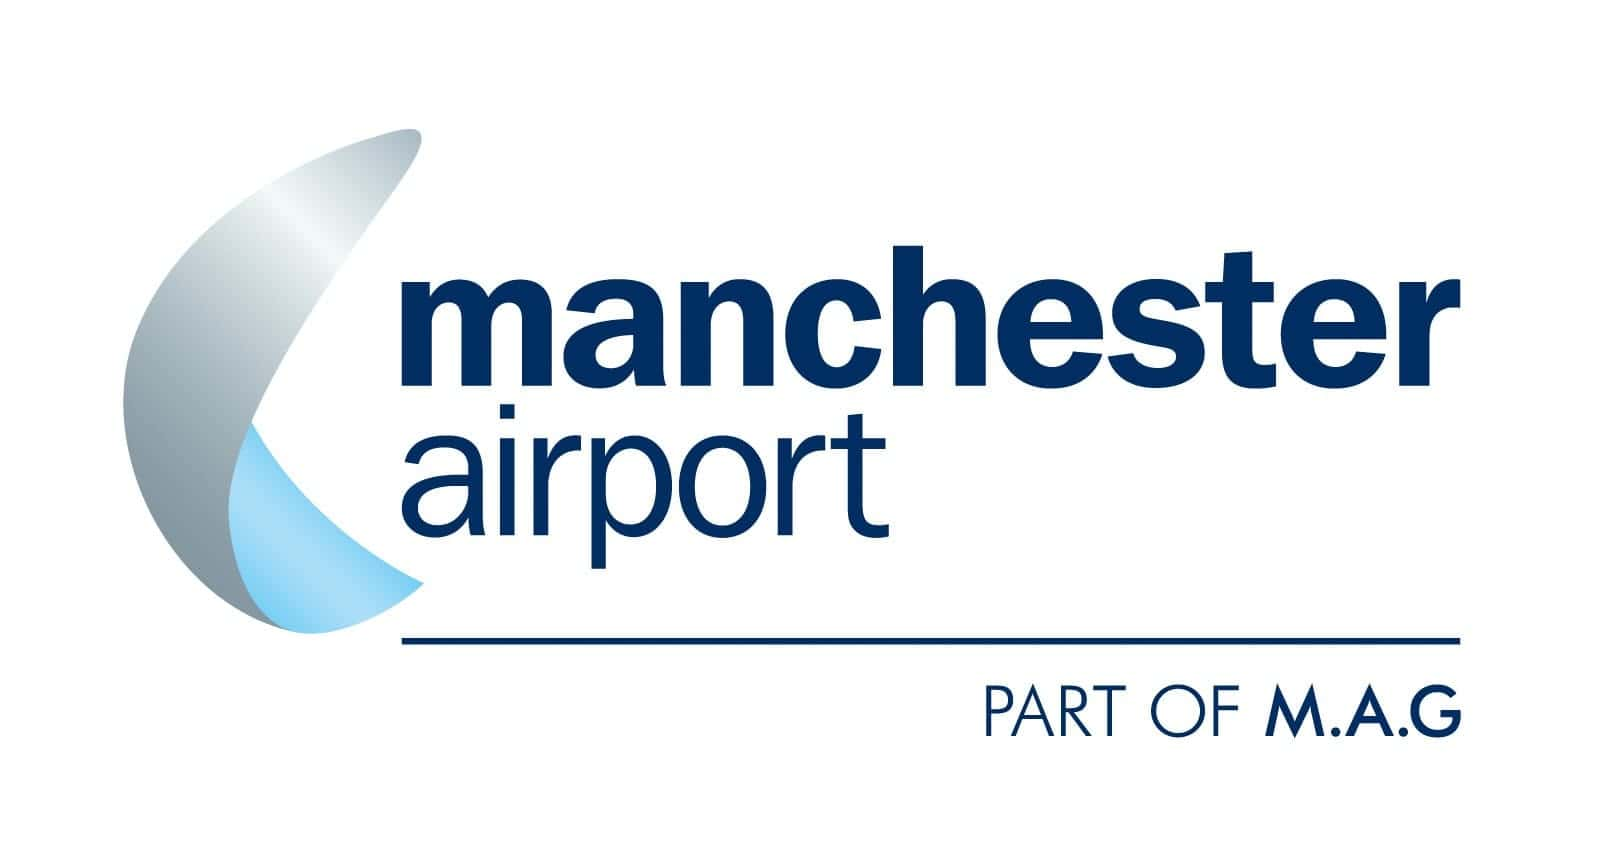 Manchester airport part of M.A.G